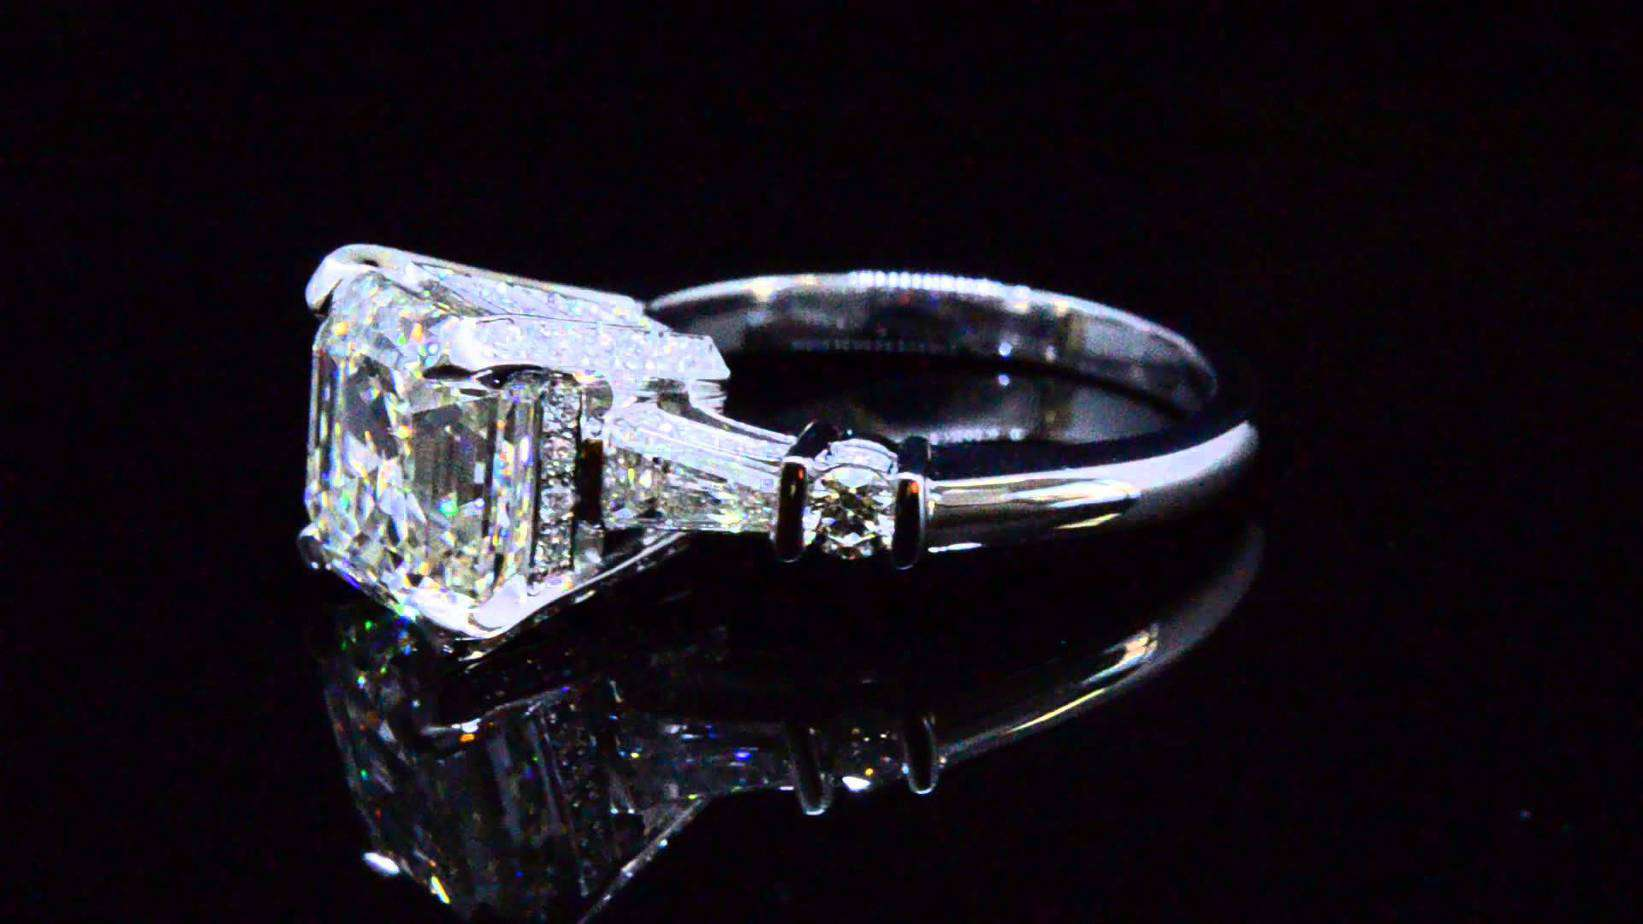 a by once sheldon upon asher asscher diamond w platinum french engagement accents ring speyer products